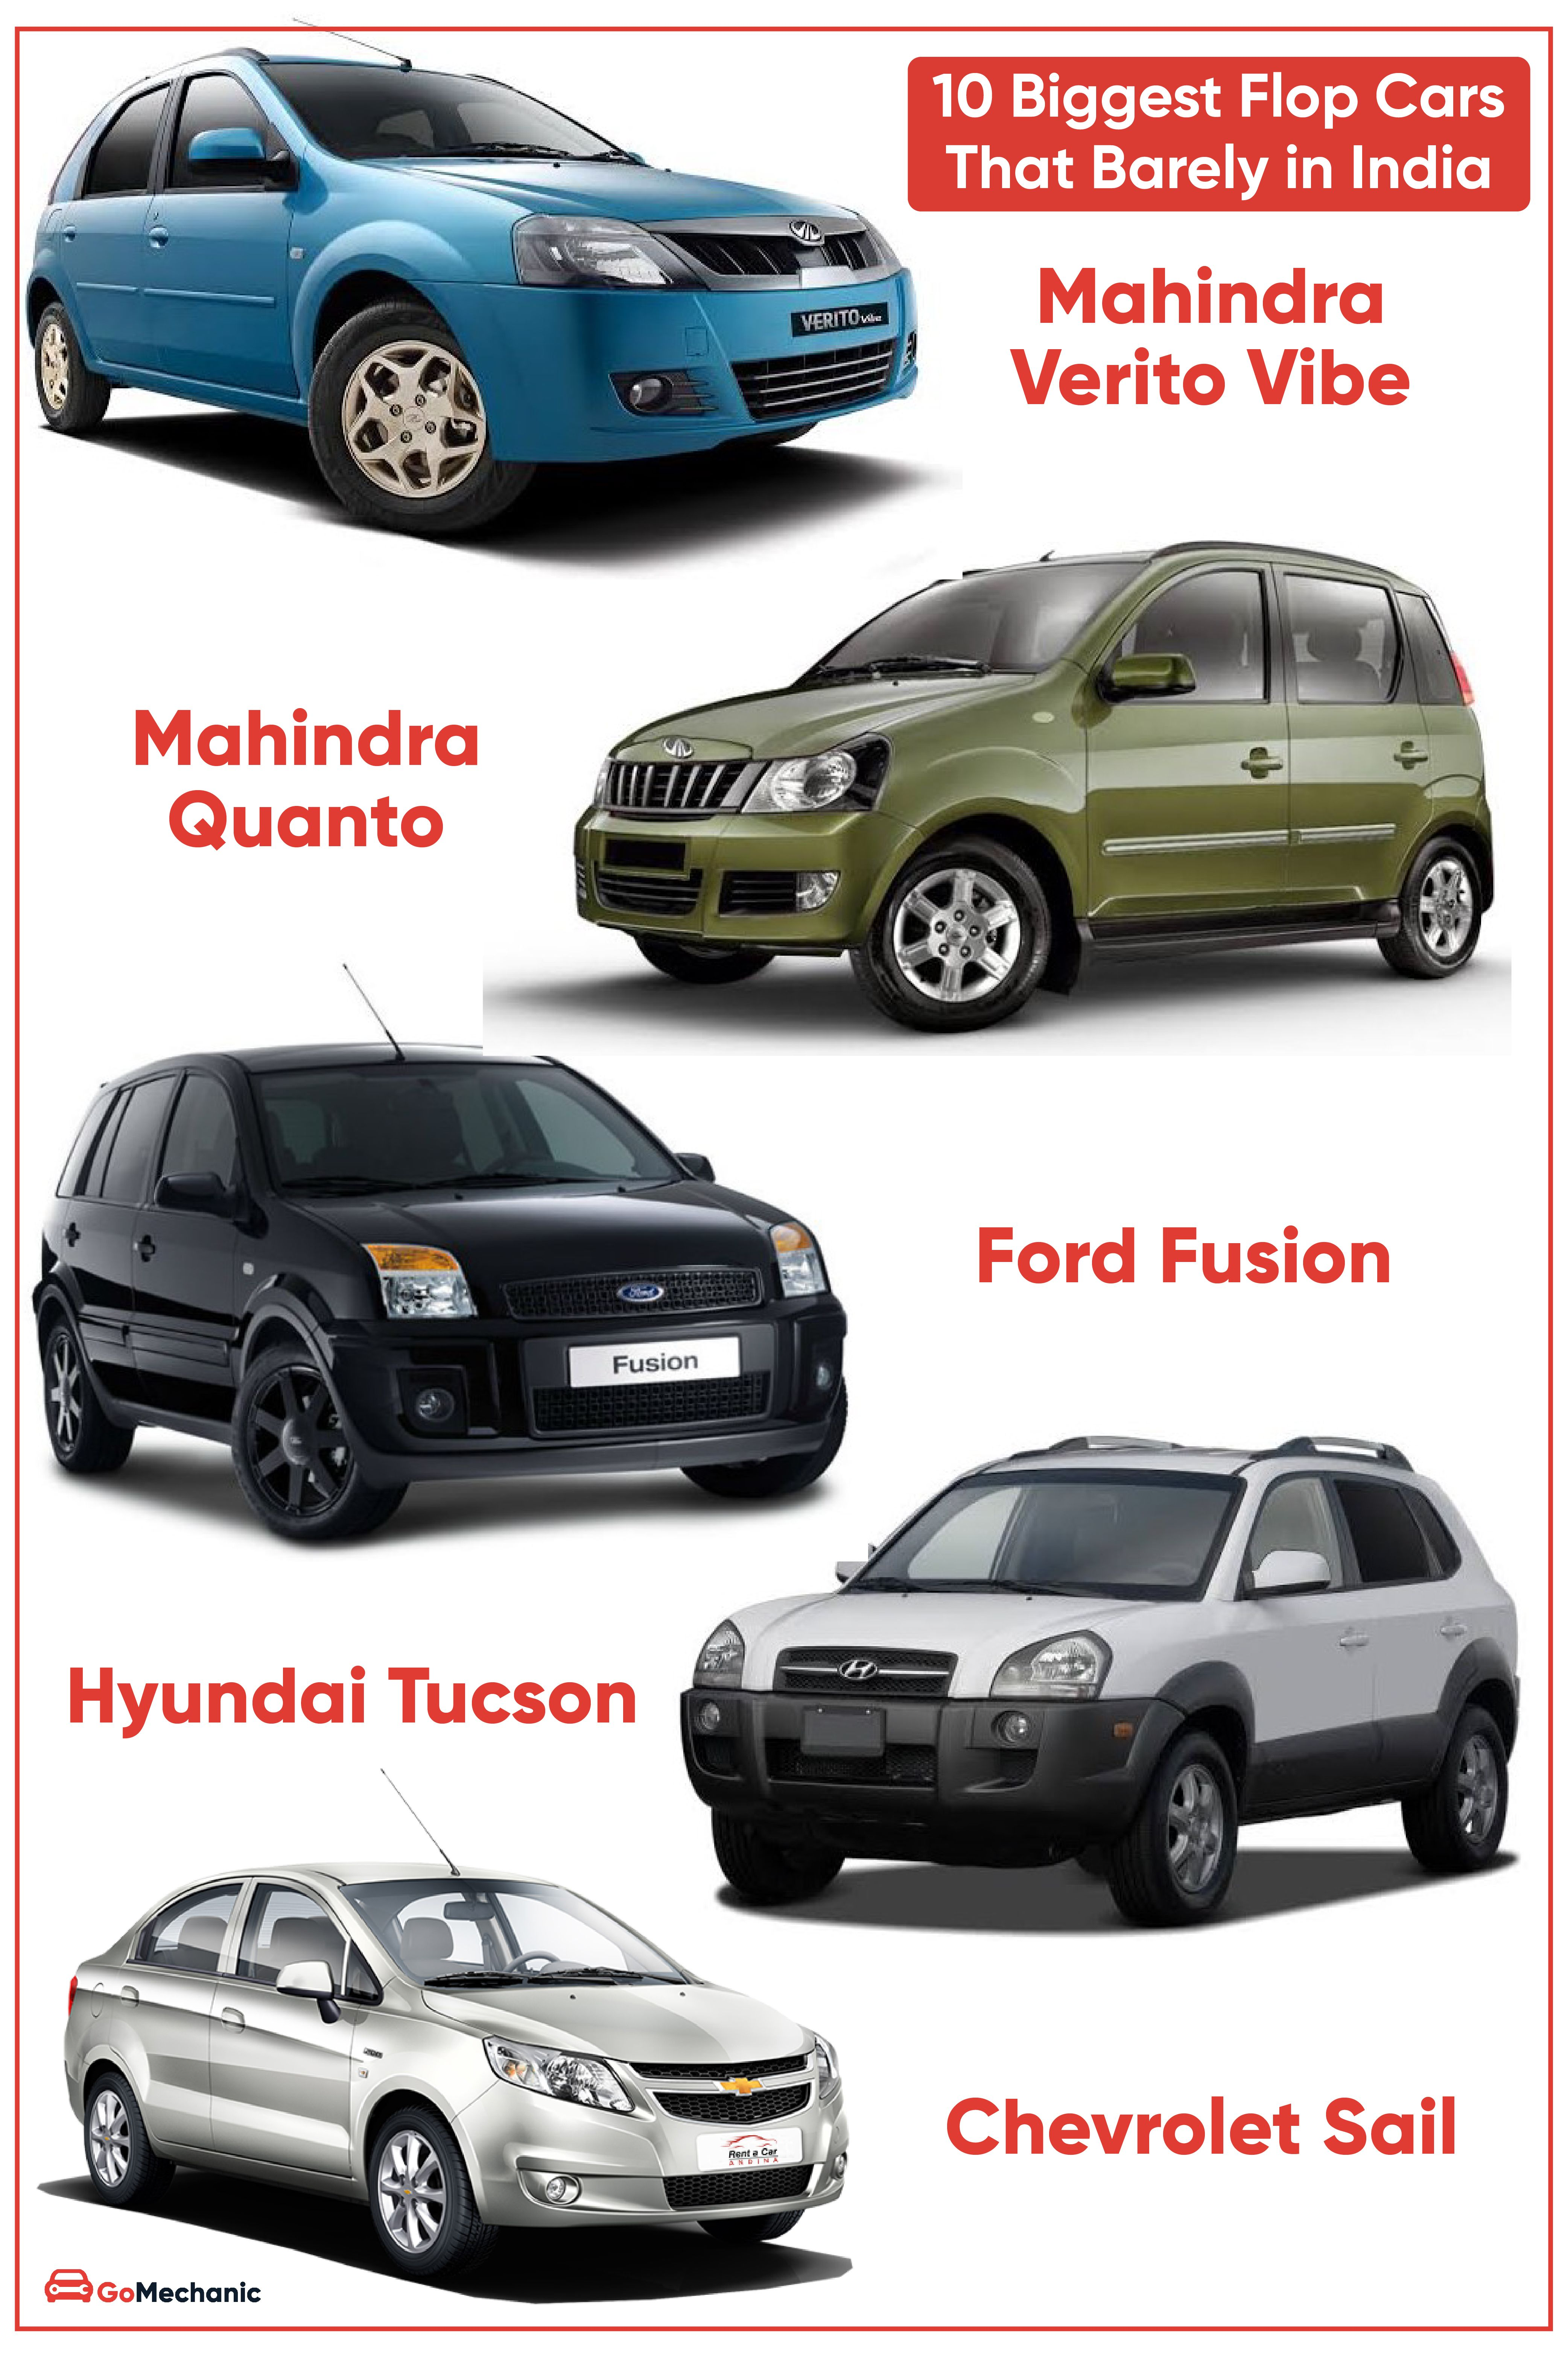 10 Biggest Flop Cars In India From The Suzuki Kizashi To Ford